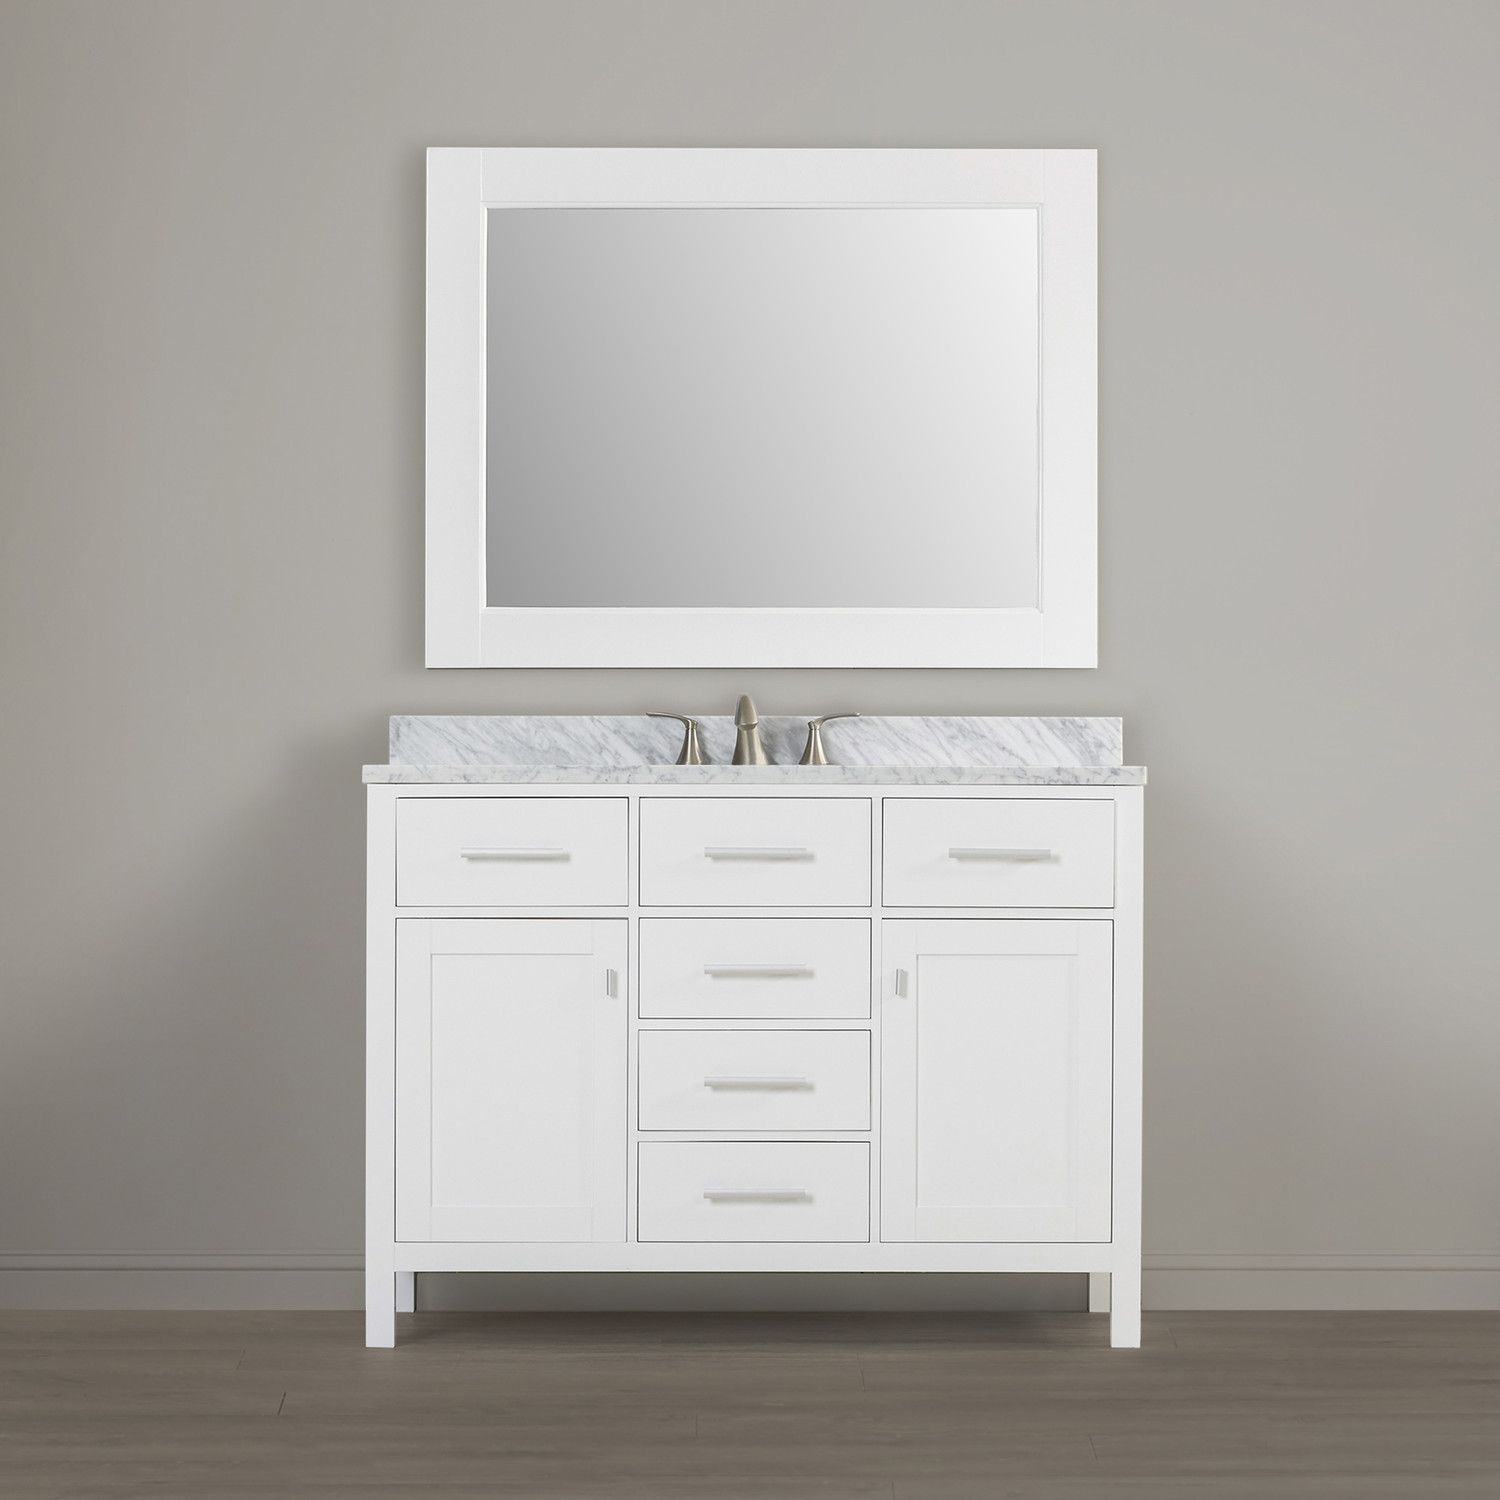 Shop Wayfair for All Bathroom Vanities To Match Every Style and